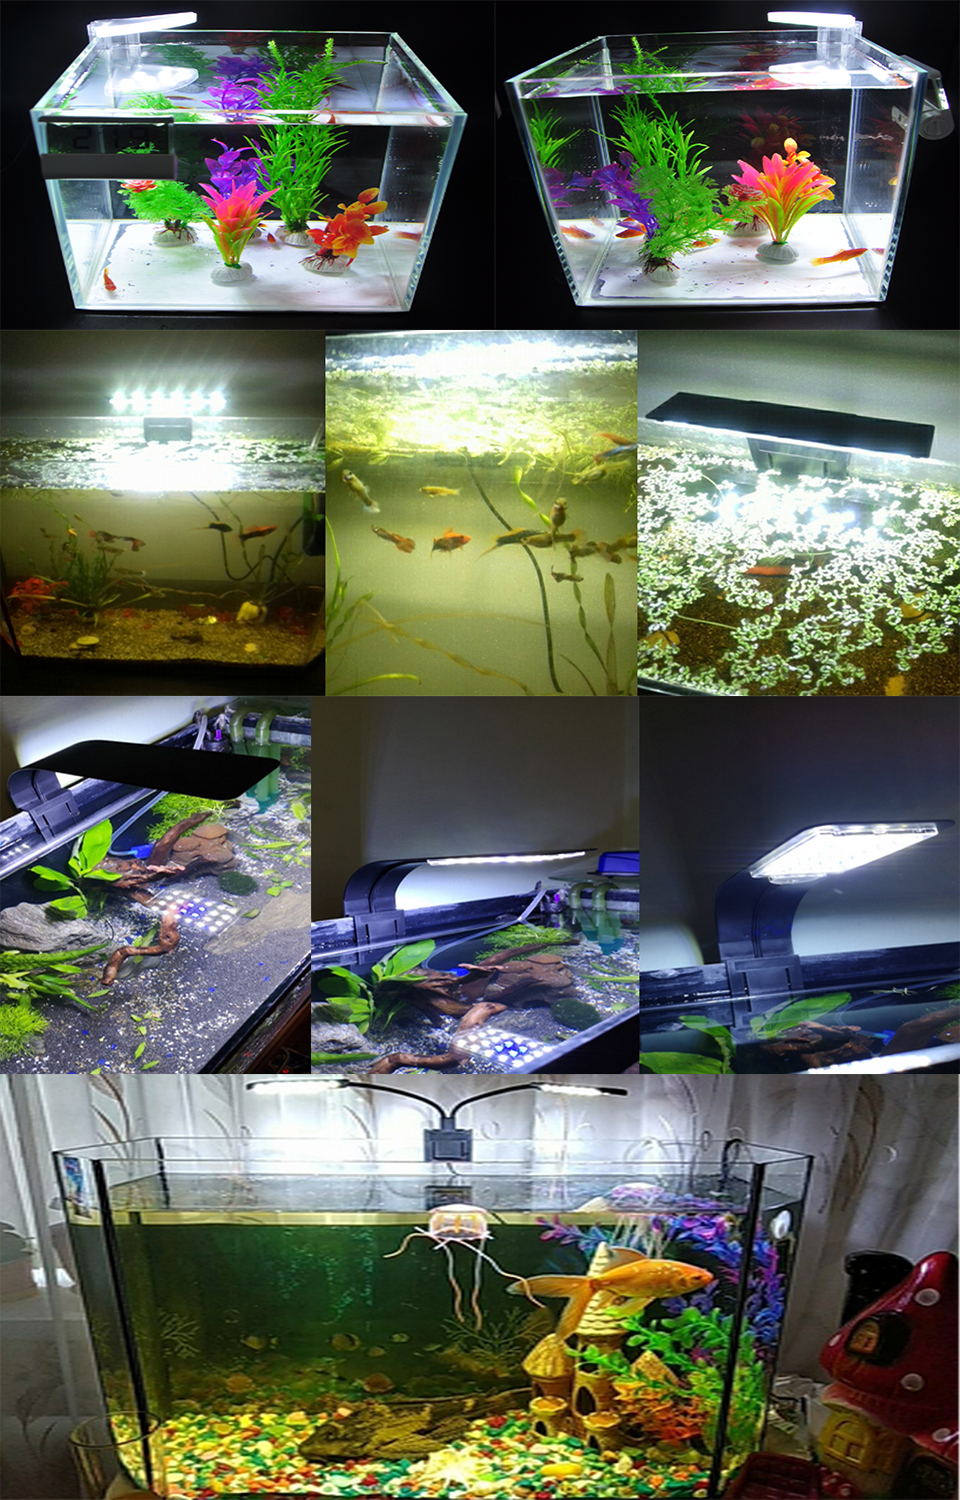 Super Bright LED Aquarium Lights LED Plants Grow Light 5W/10W/15W Aquatic Freshwater Lamps Waterproof Clip on Lamp For Fish Tank 28